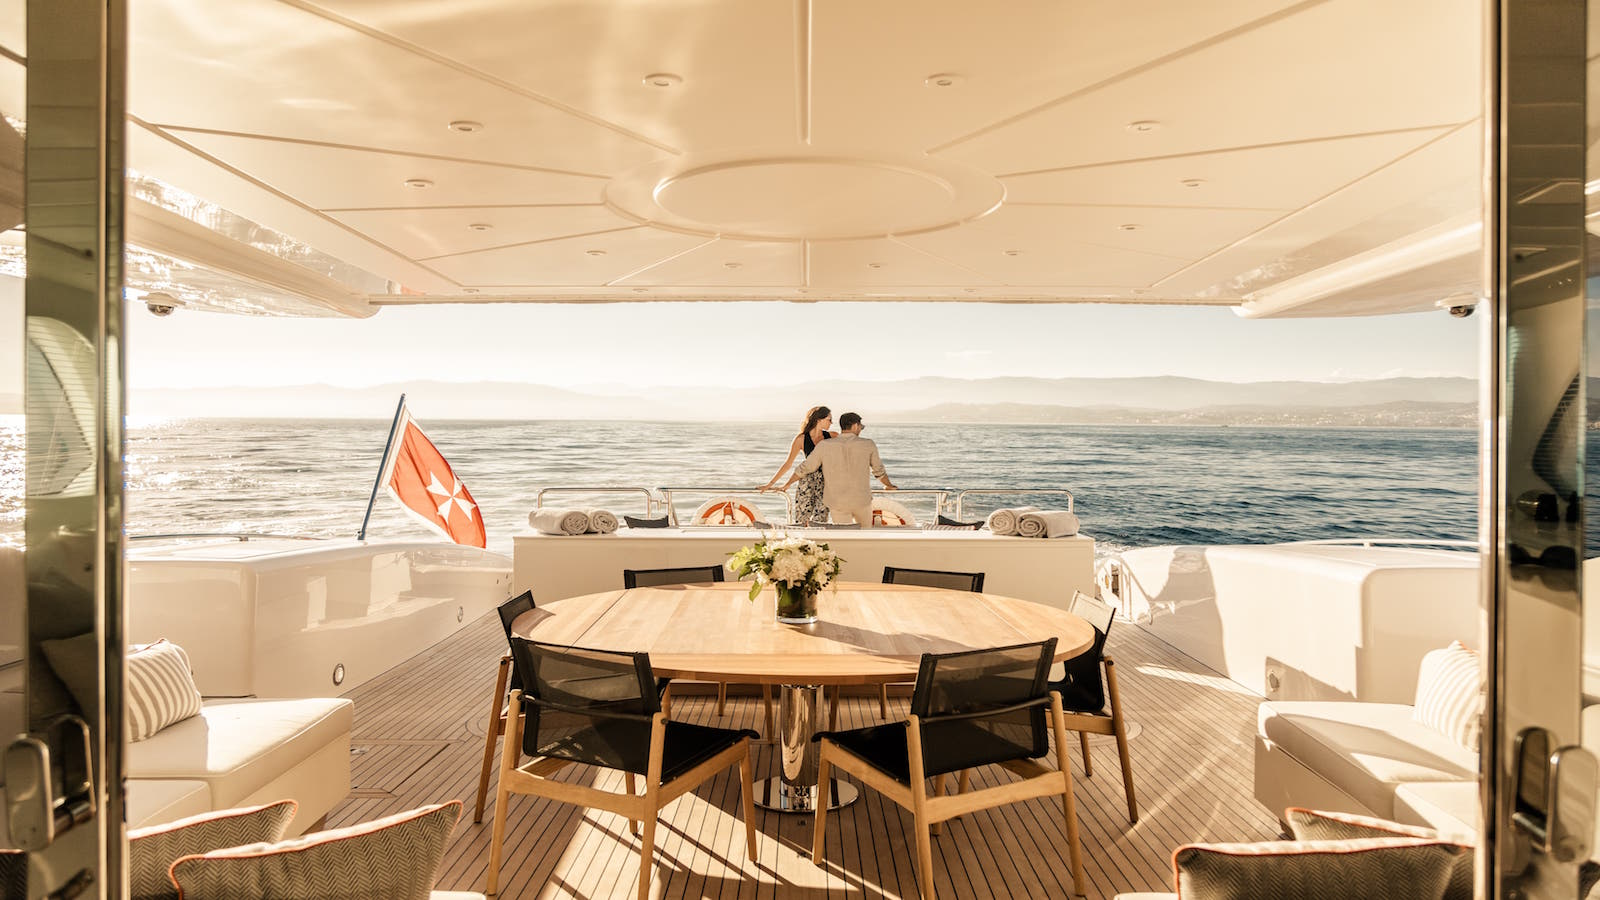 Complete relaxation in privacy on a luxury yacht charter